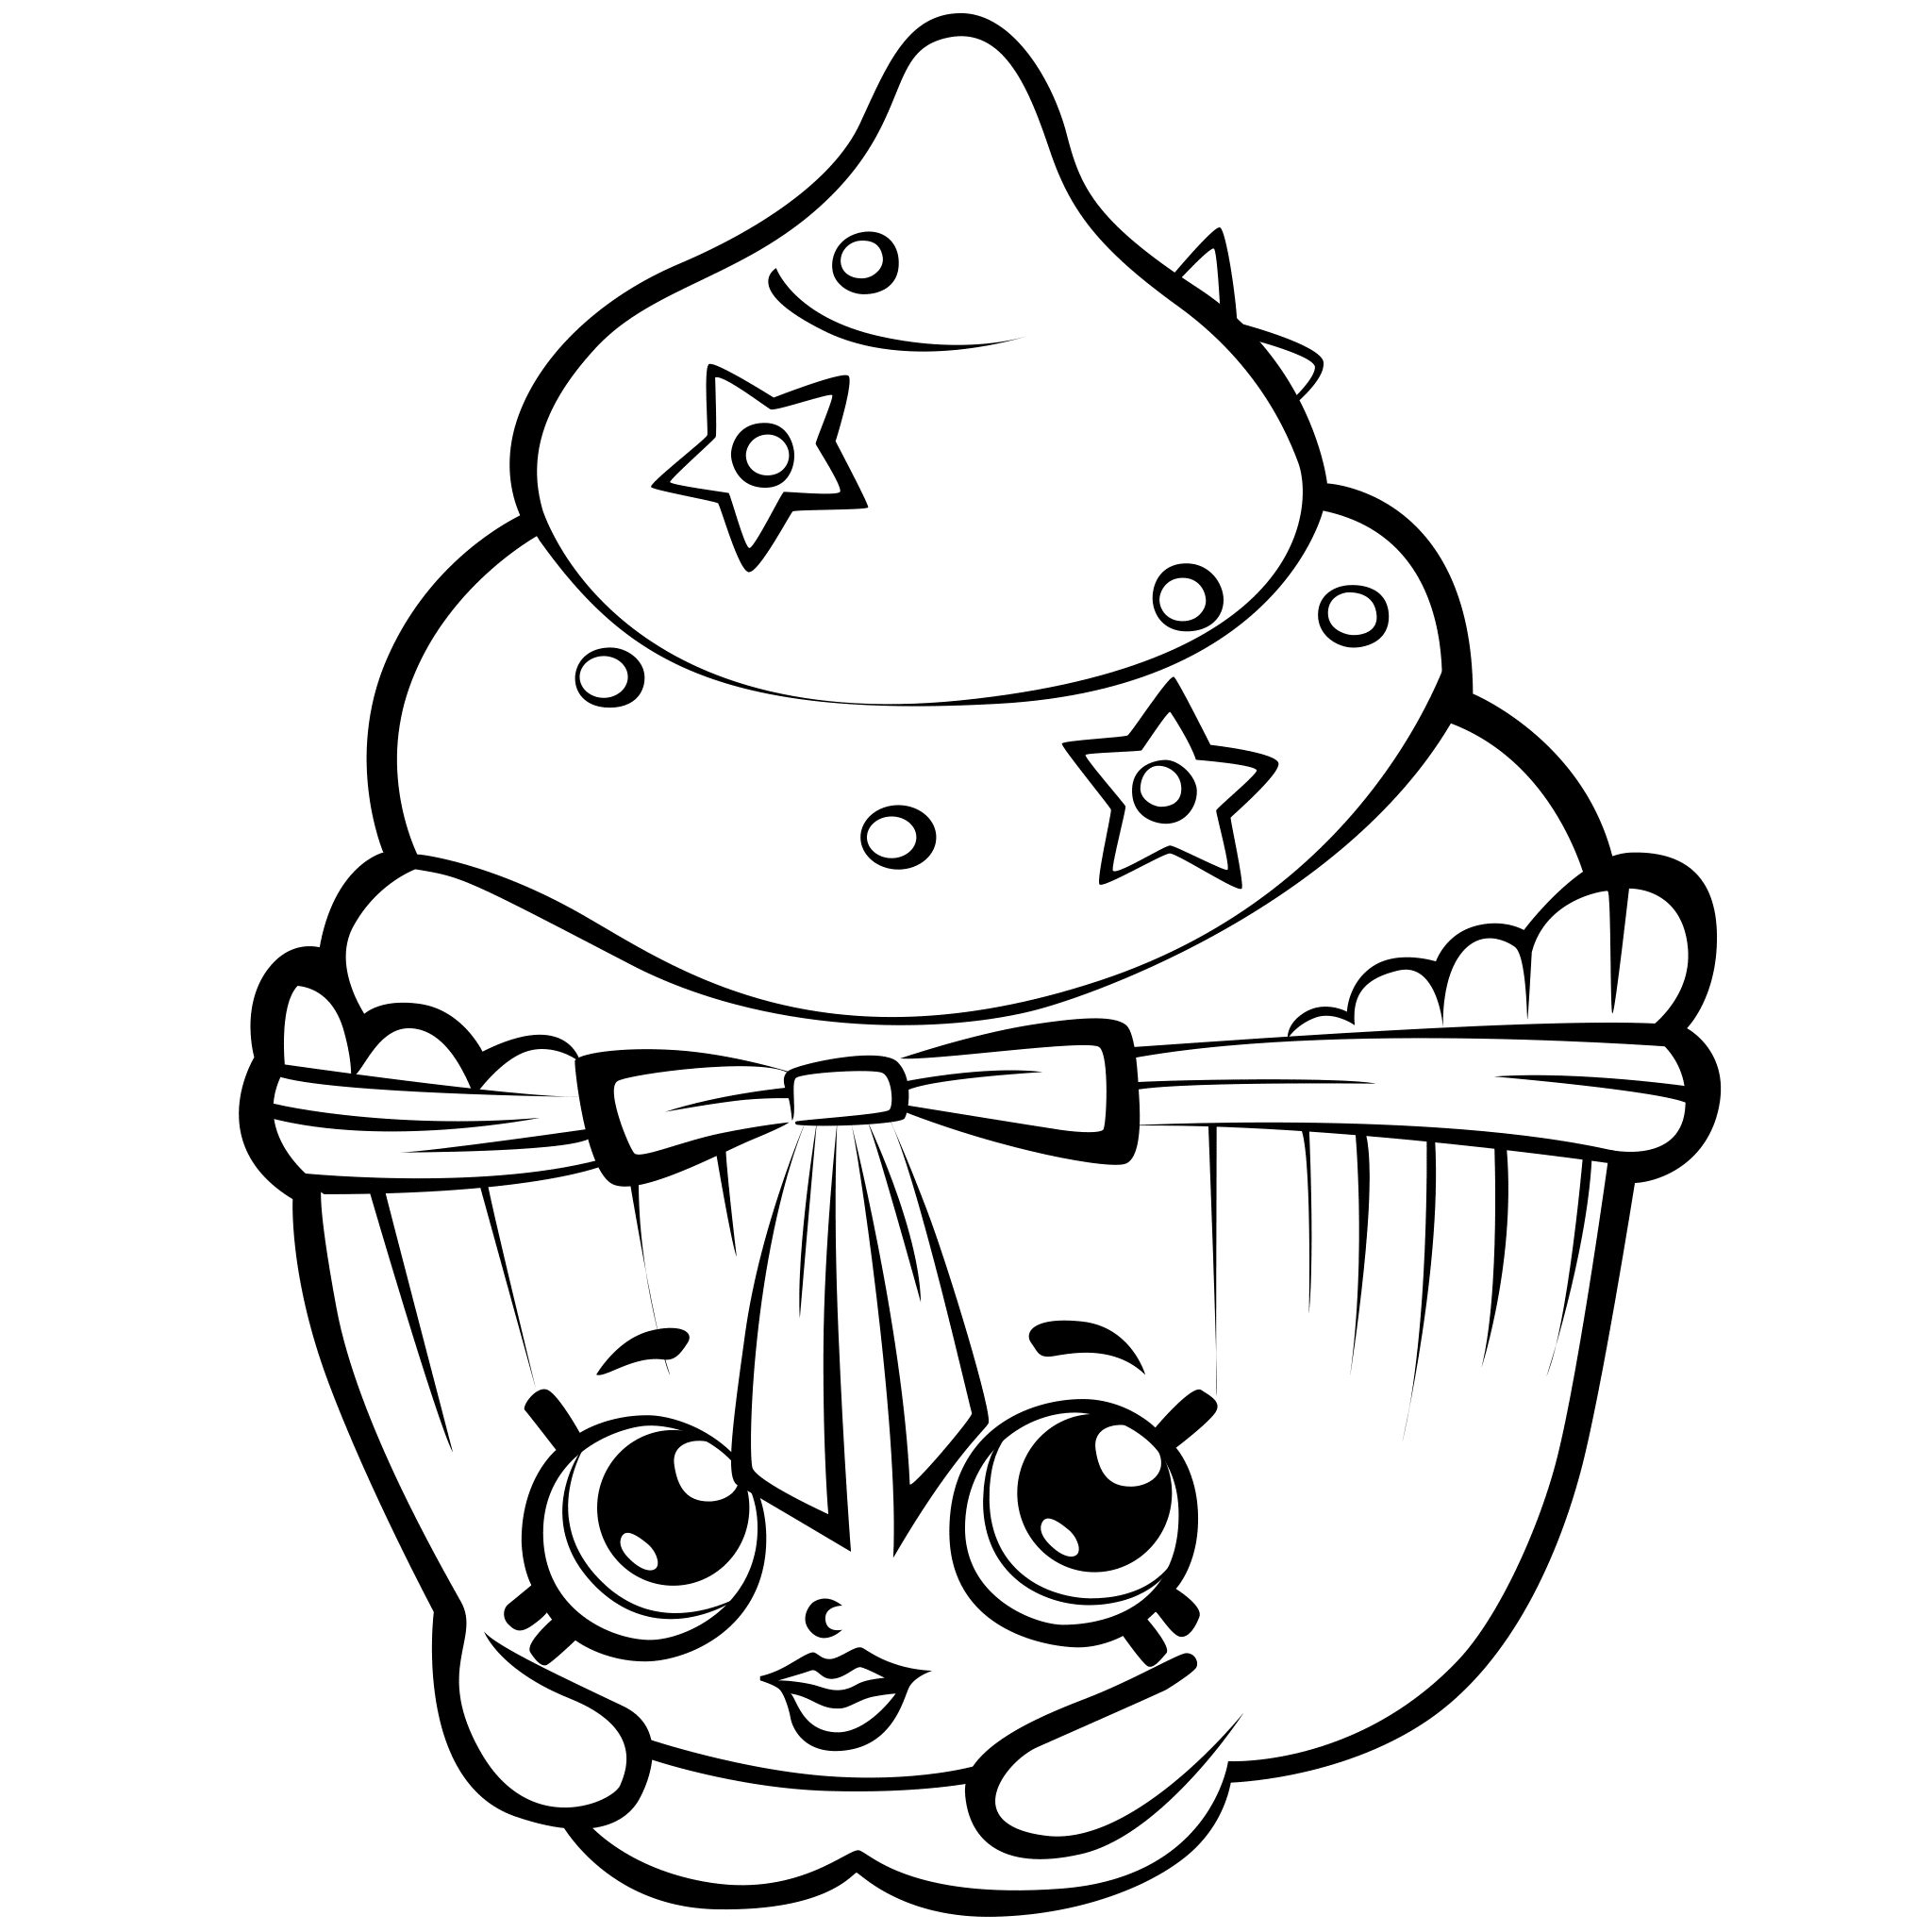 Shopkins Coloring Pages Best Coloring Pages for Kids Printable Of Free Shopkins Printables Coloring Pages Download 4 Shopkins Printable